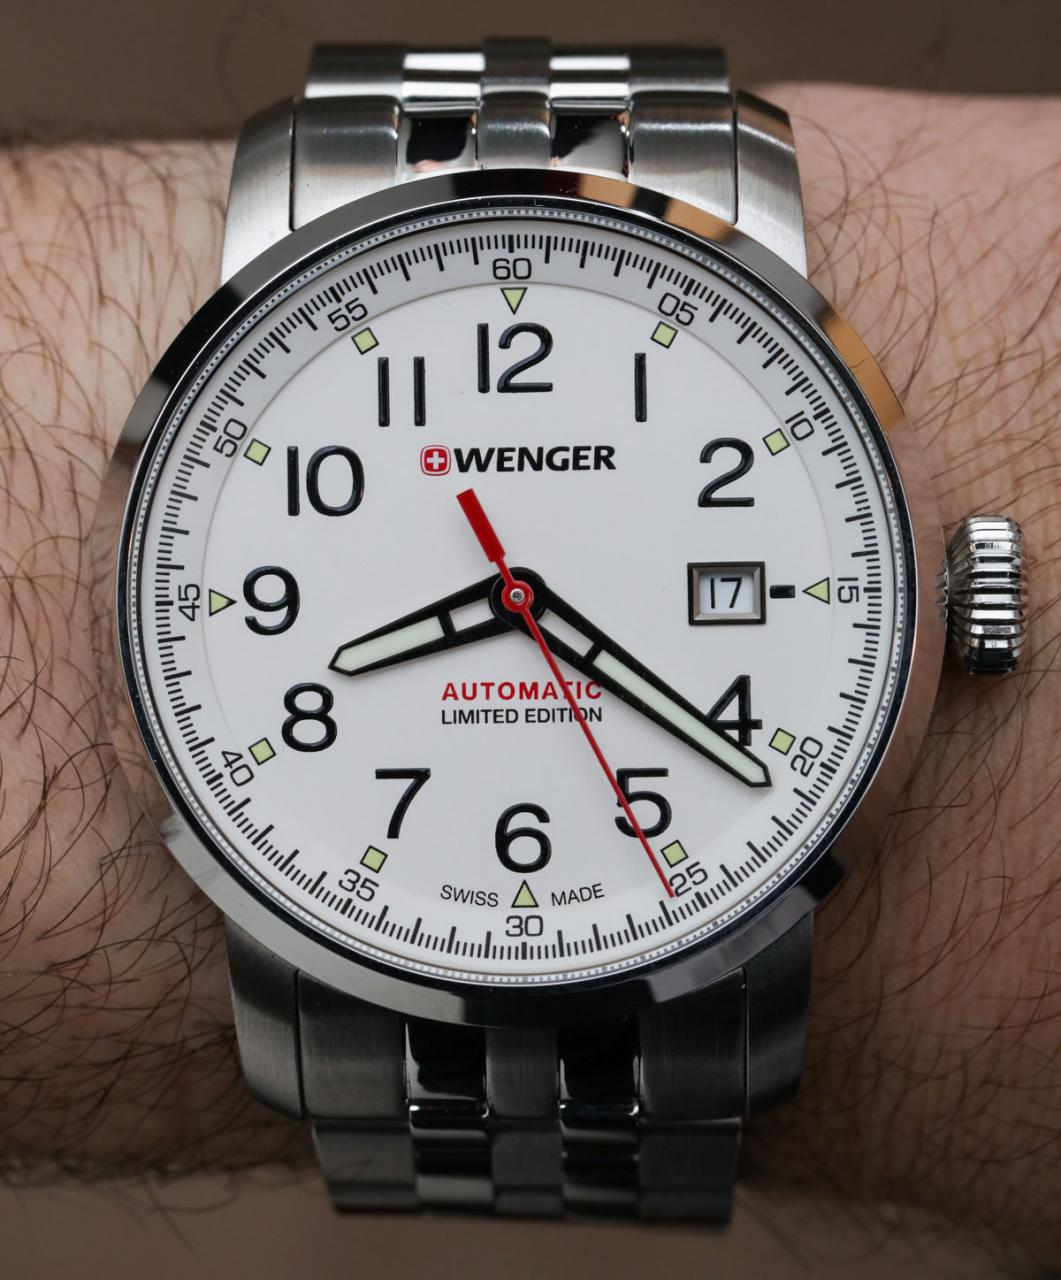 WATCH GIVEAWAY: Wenger Attitude Heritage Automatic Limited Edition Giveaways